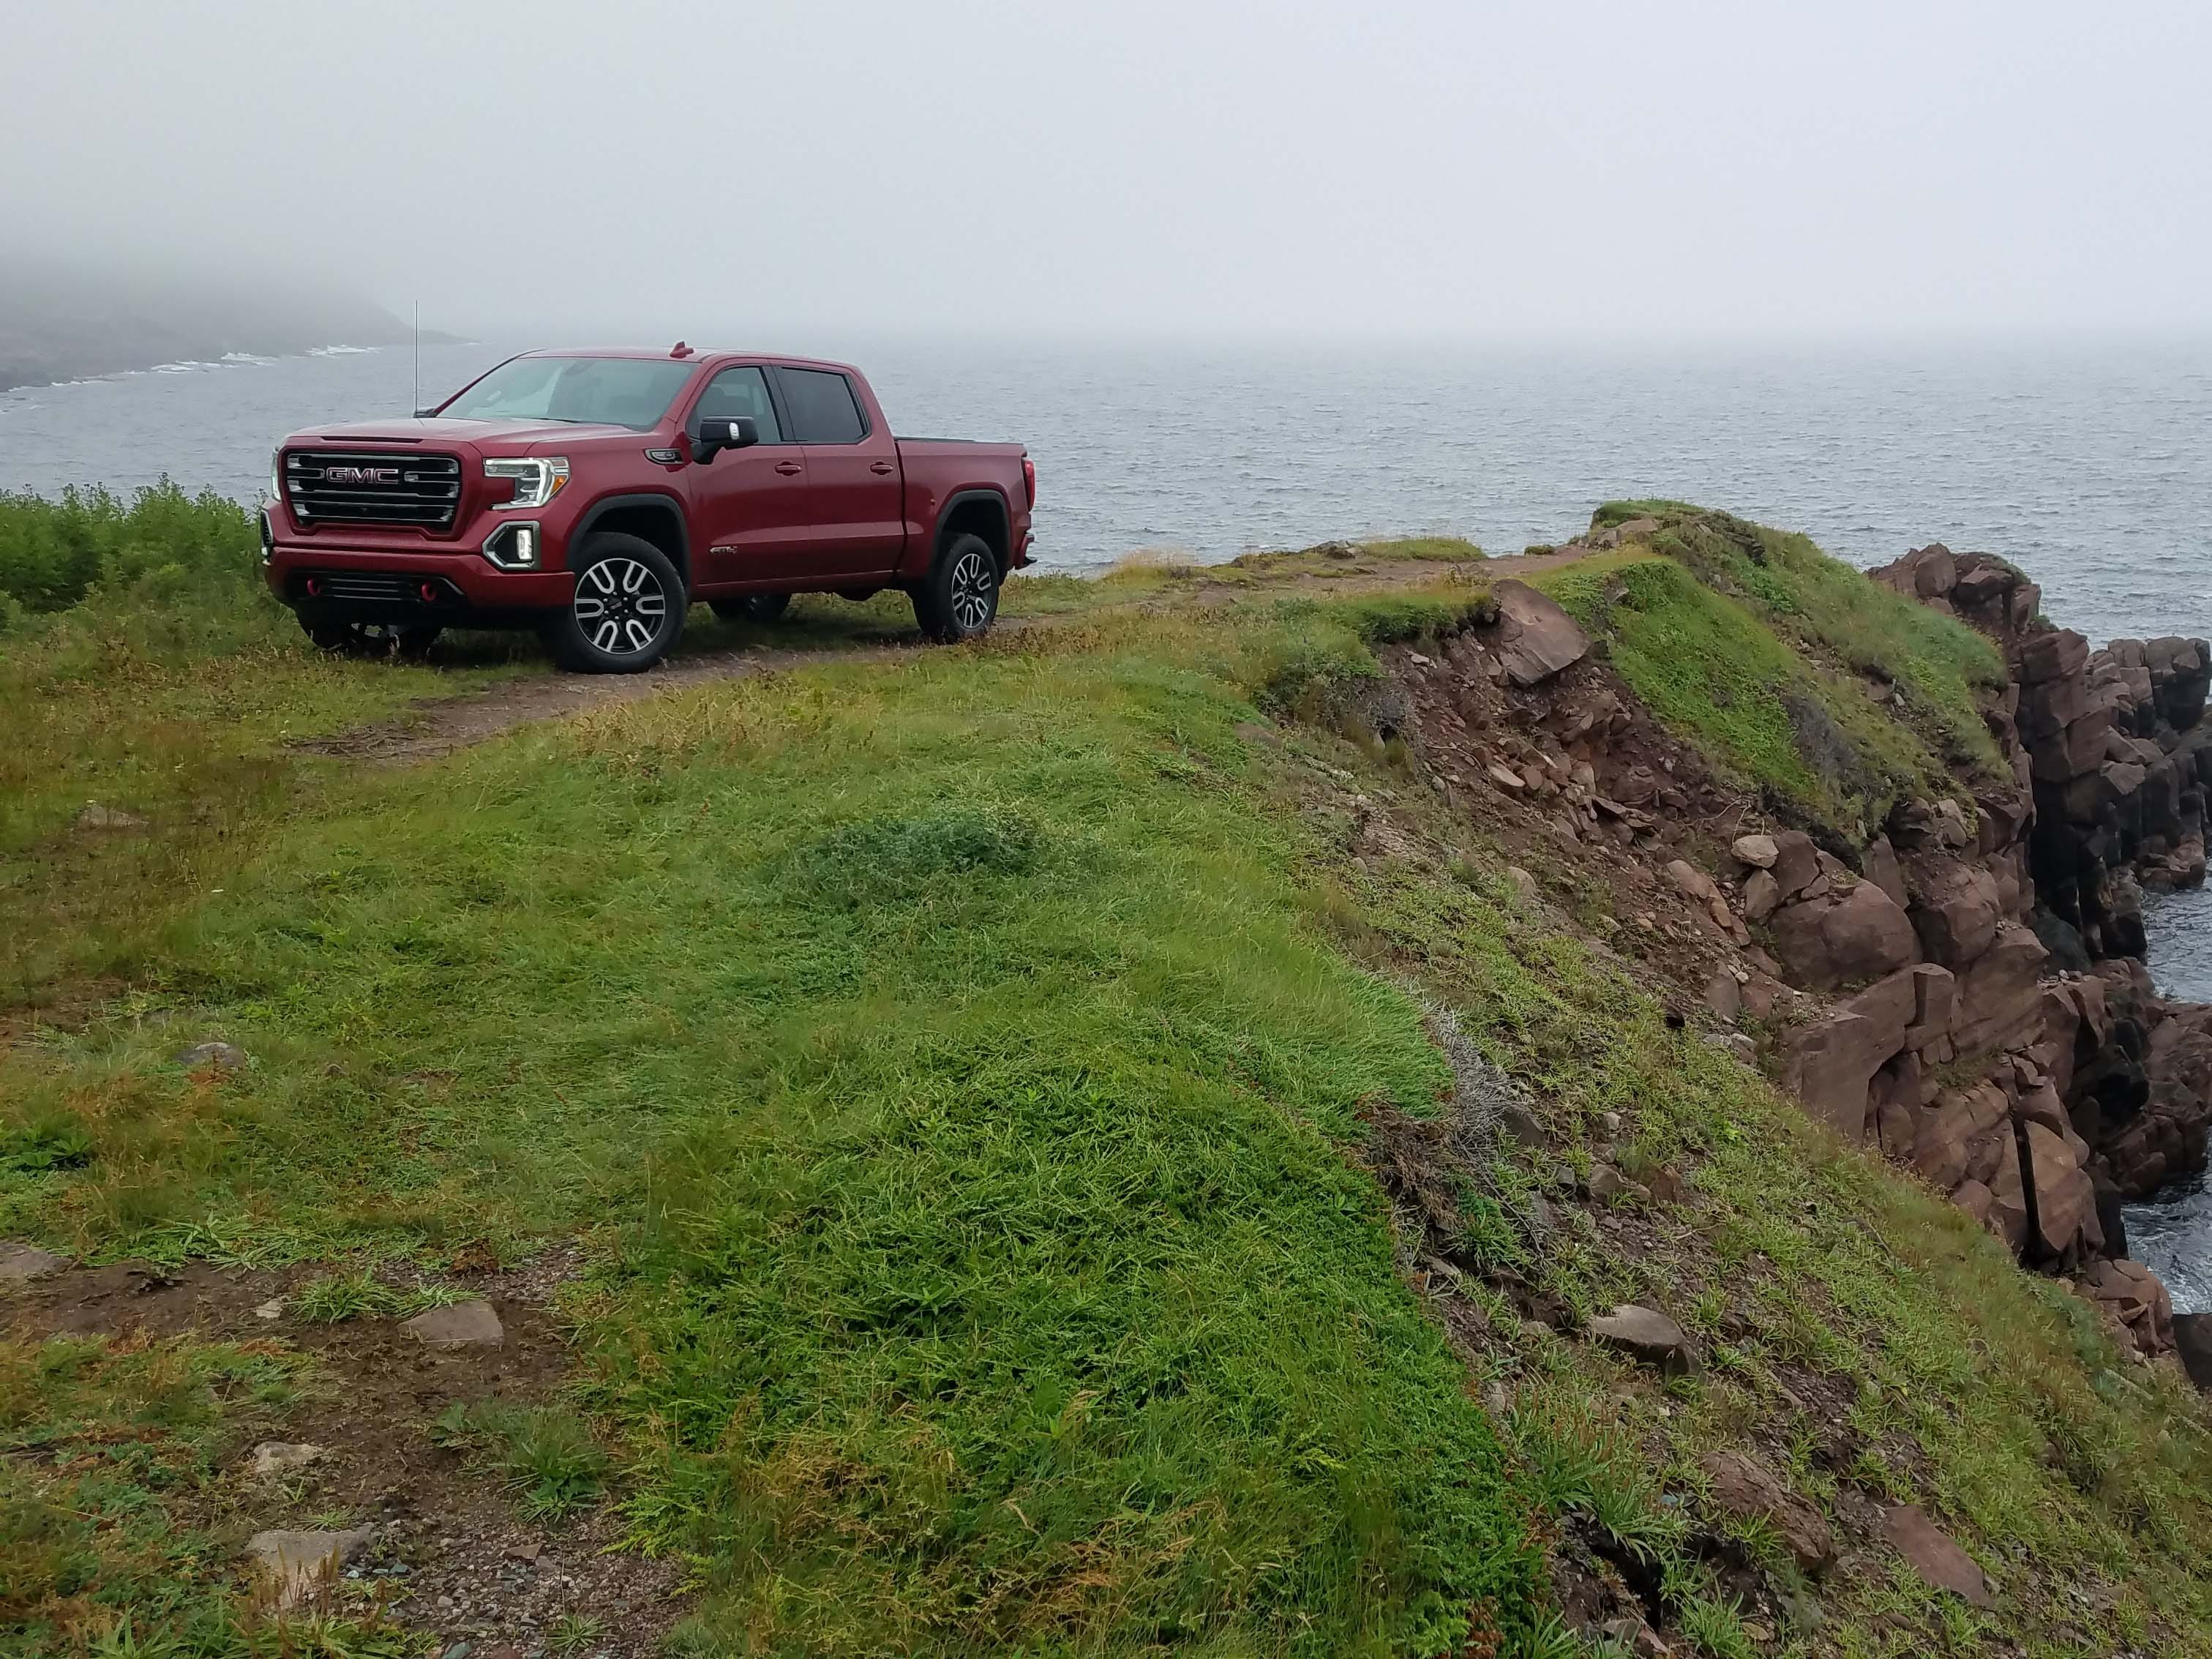 GMC introduced the all-new, more luxurious Sierra pickup on the rigged, wind-swept island of Newfoundland in the North Atlantic.